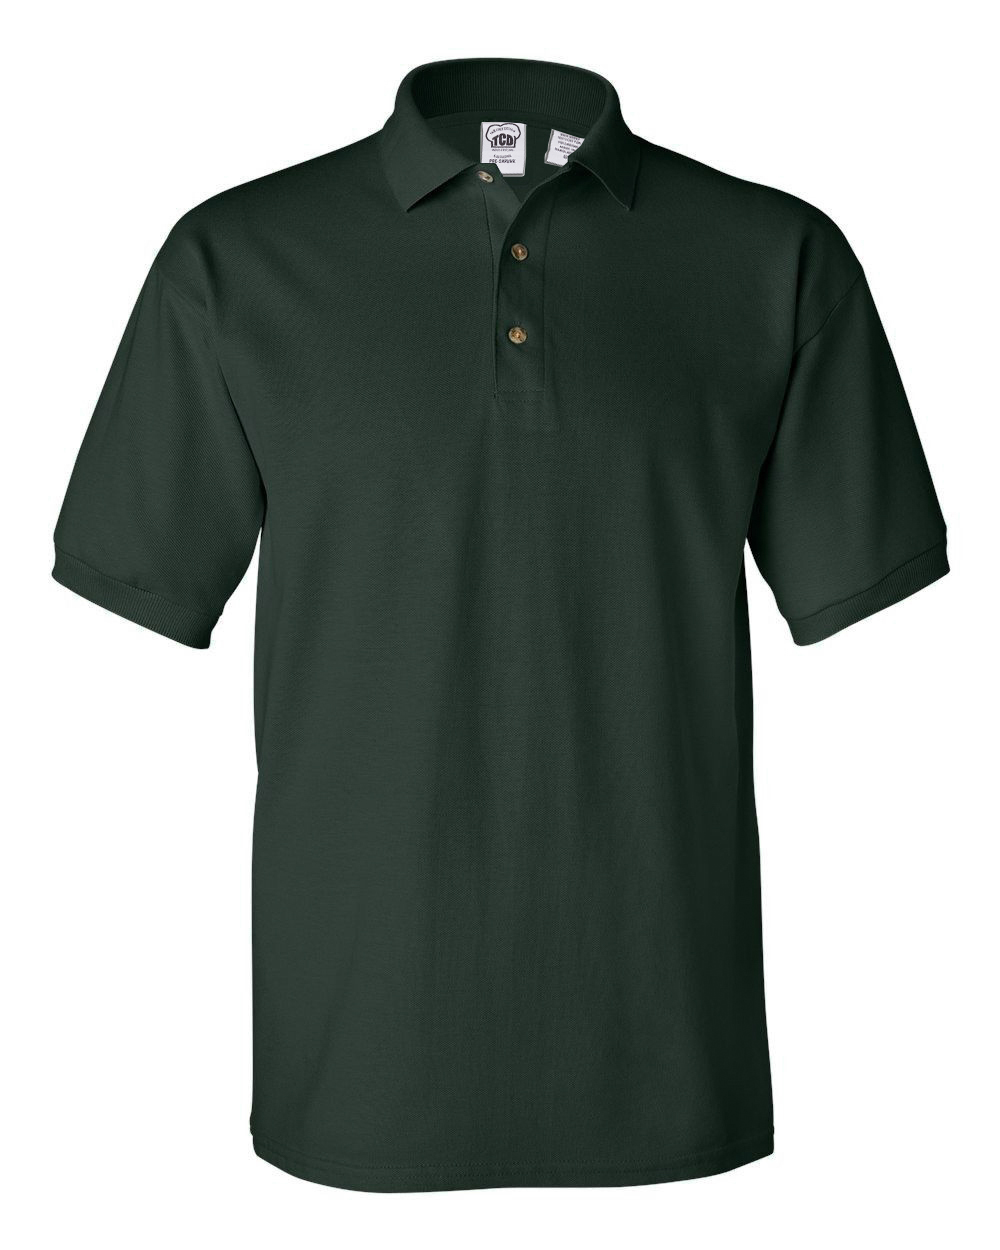 Men's 100% Preshrunk Cotton Short Sleeve Pique Polo Shirt